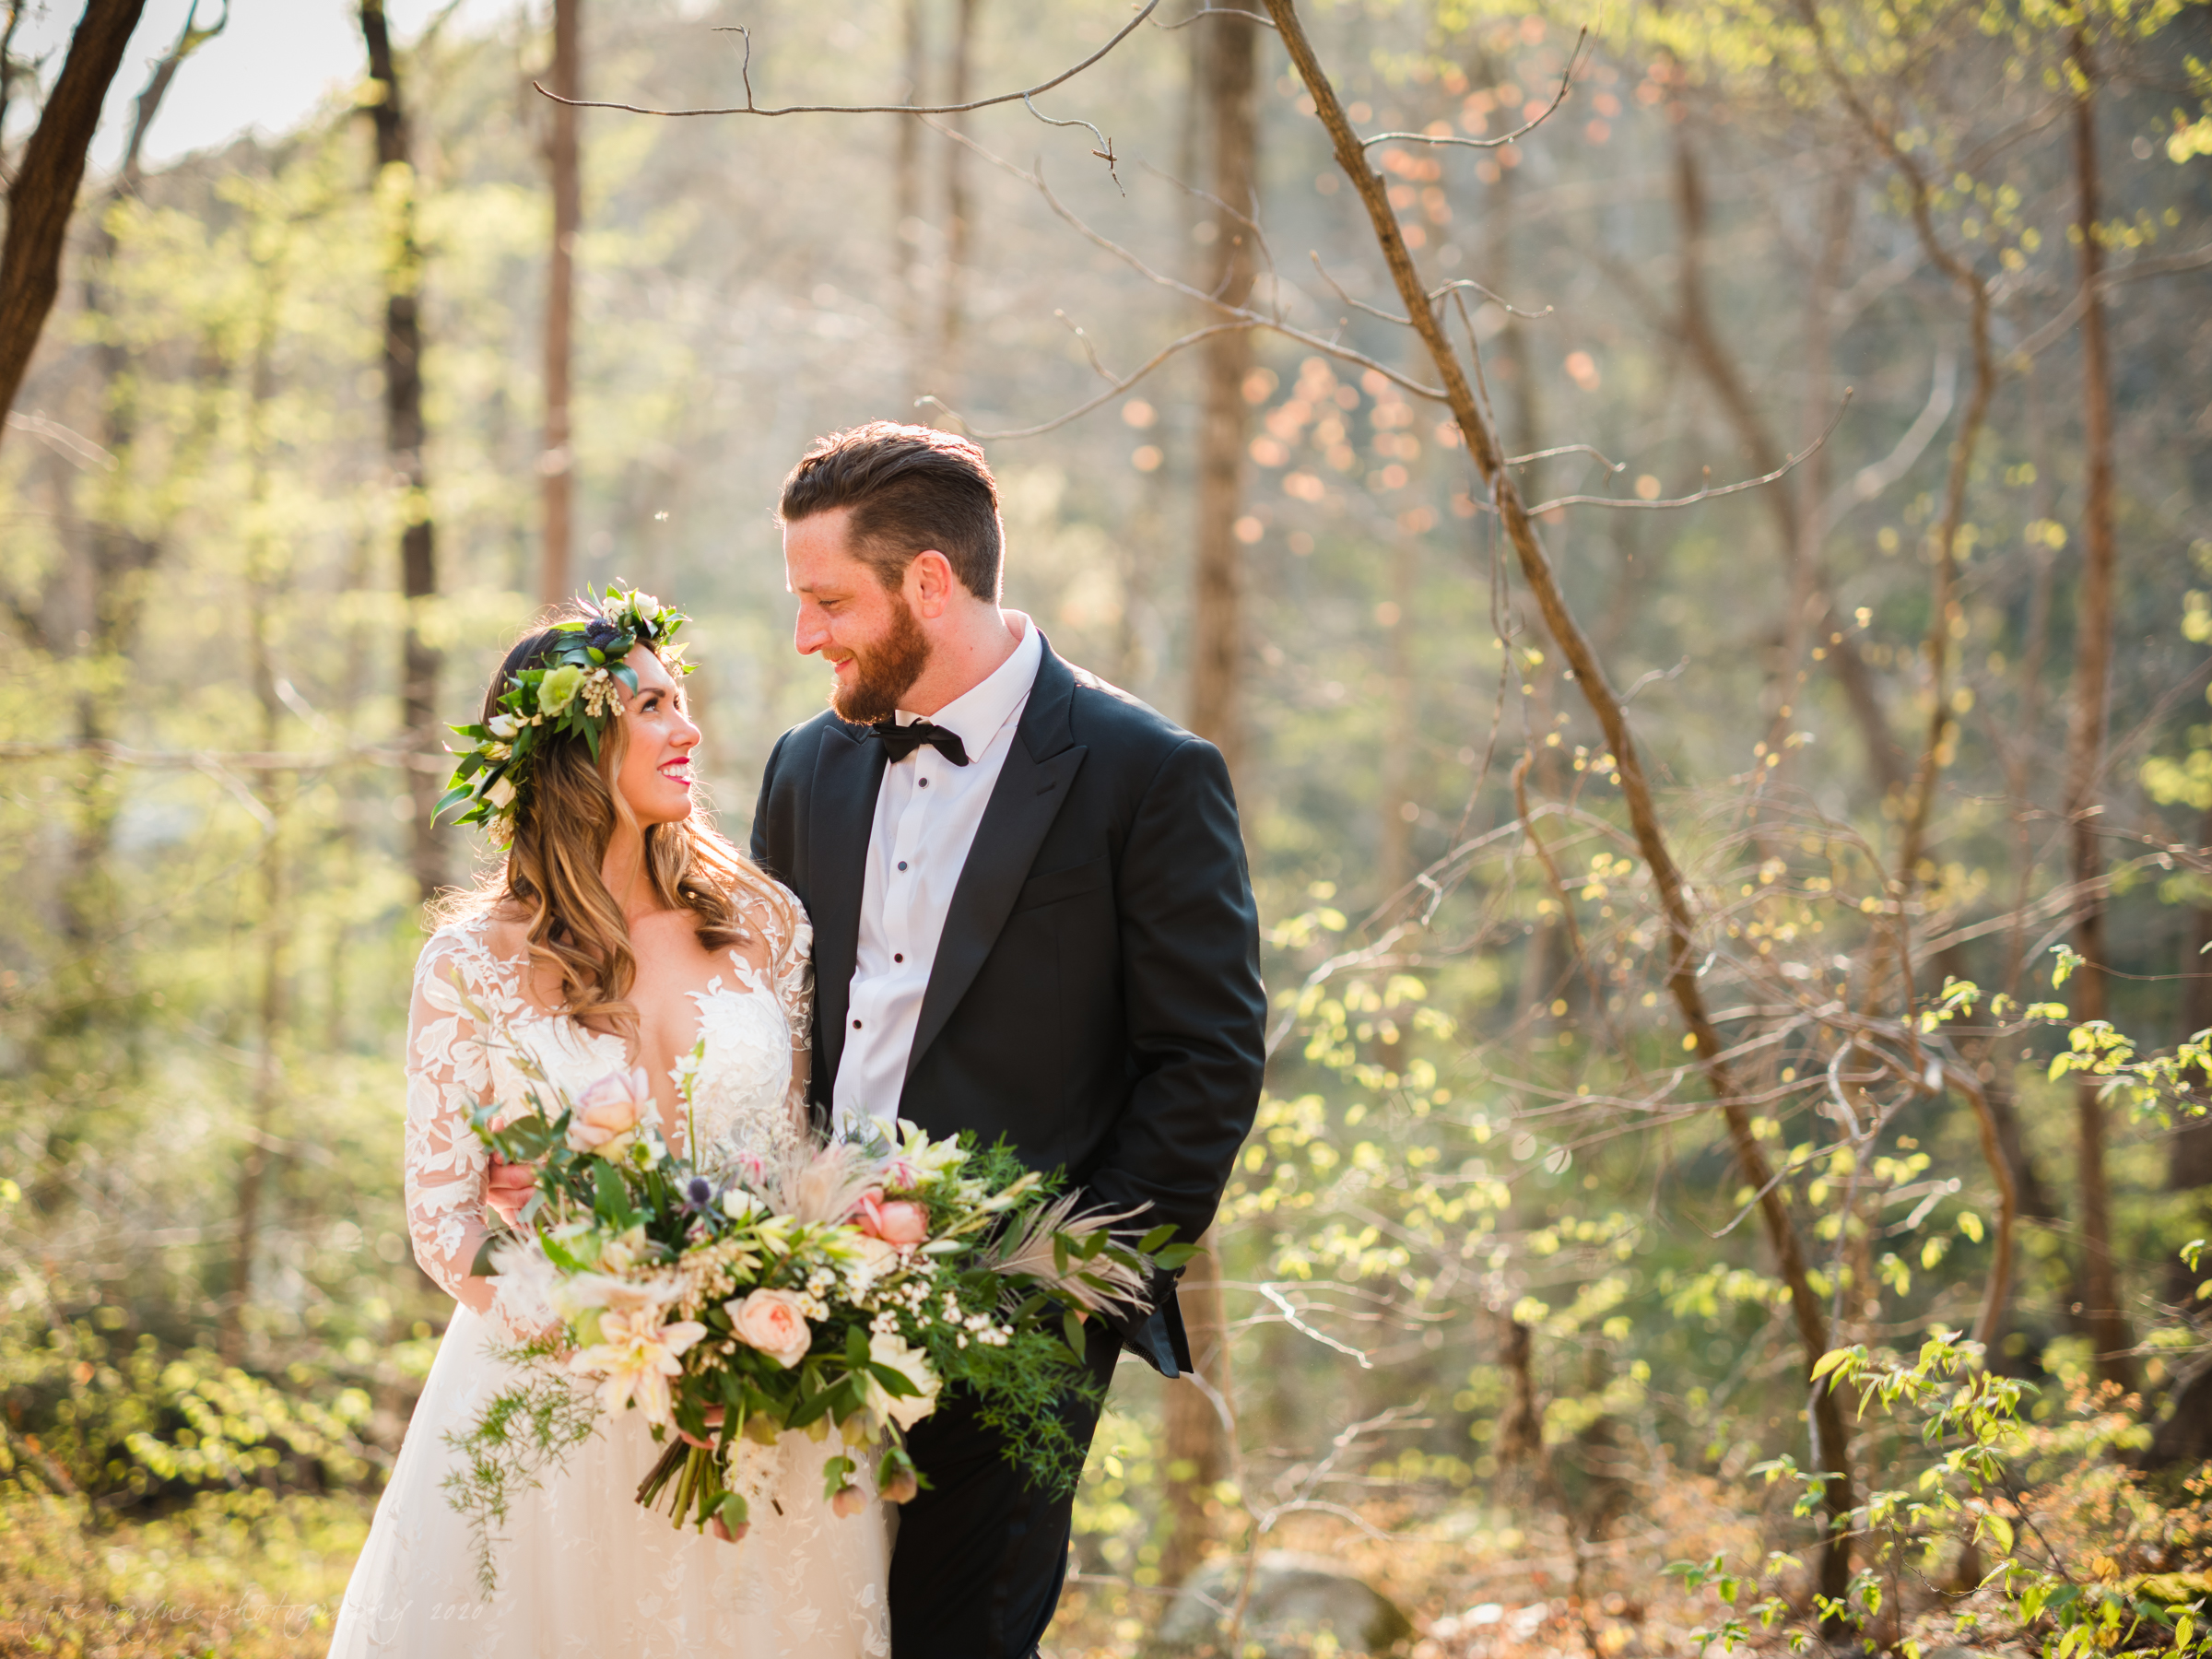 umstead hotel park wedding photography brittany harrison 32